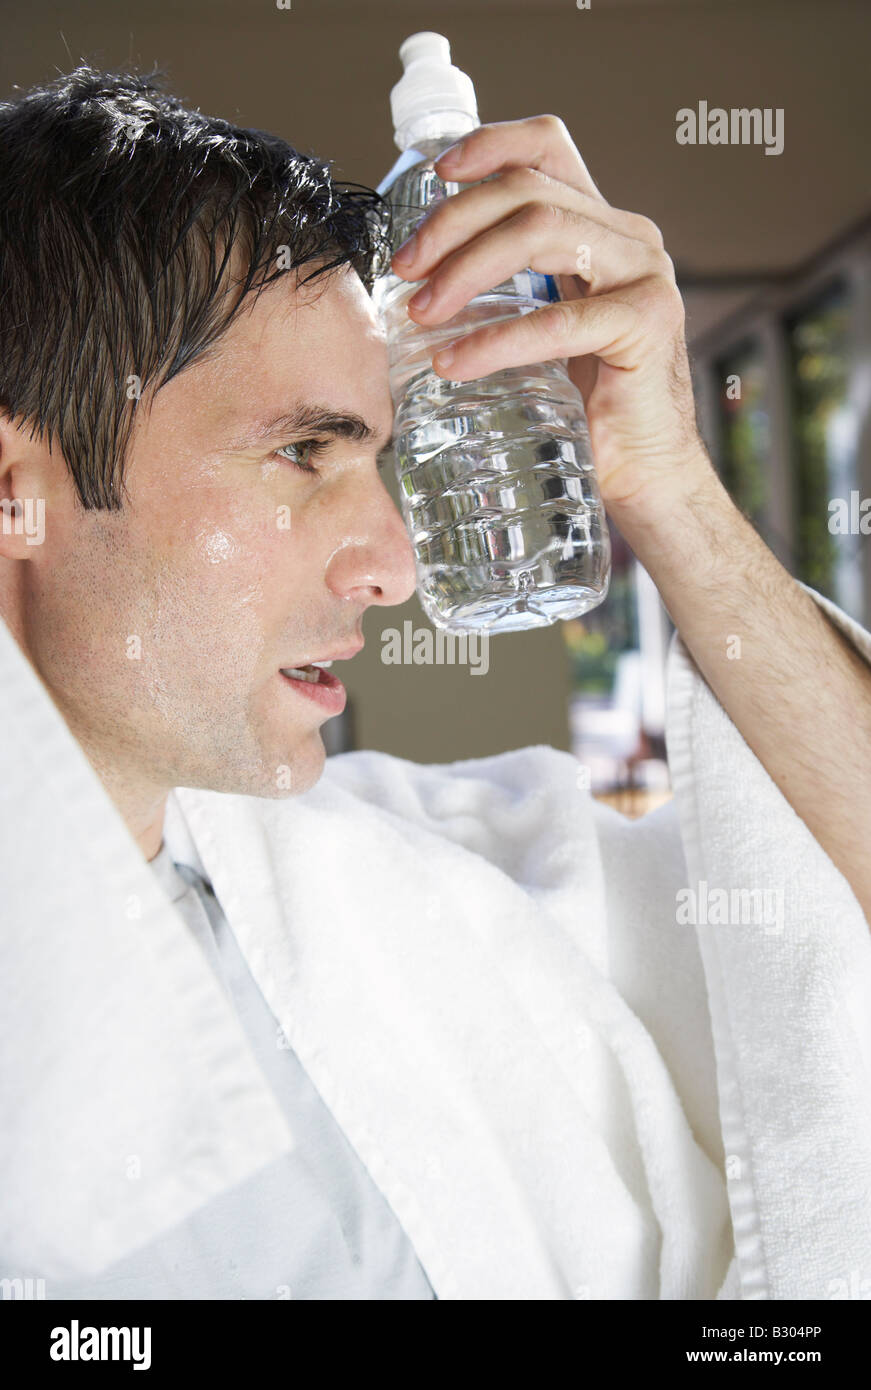 Man with Water Bottle after Exercising Stock Photo